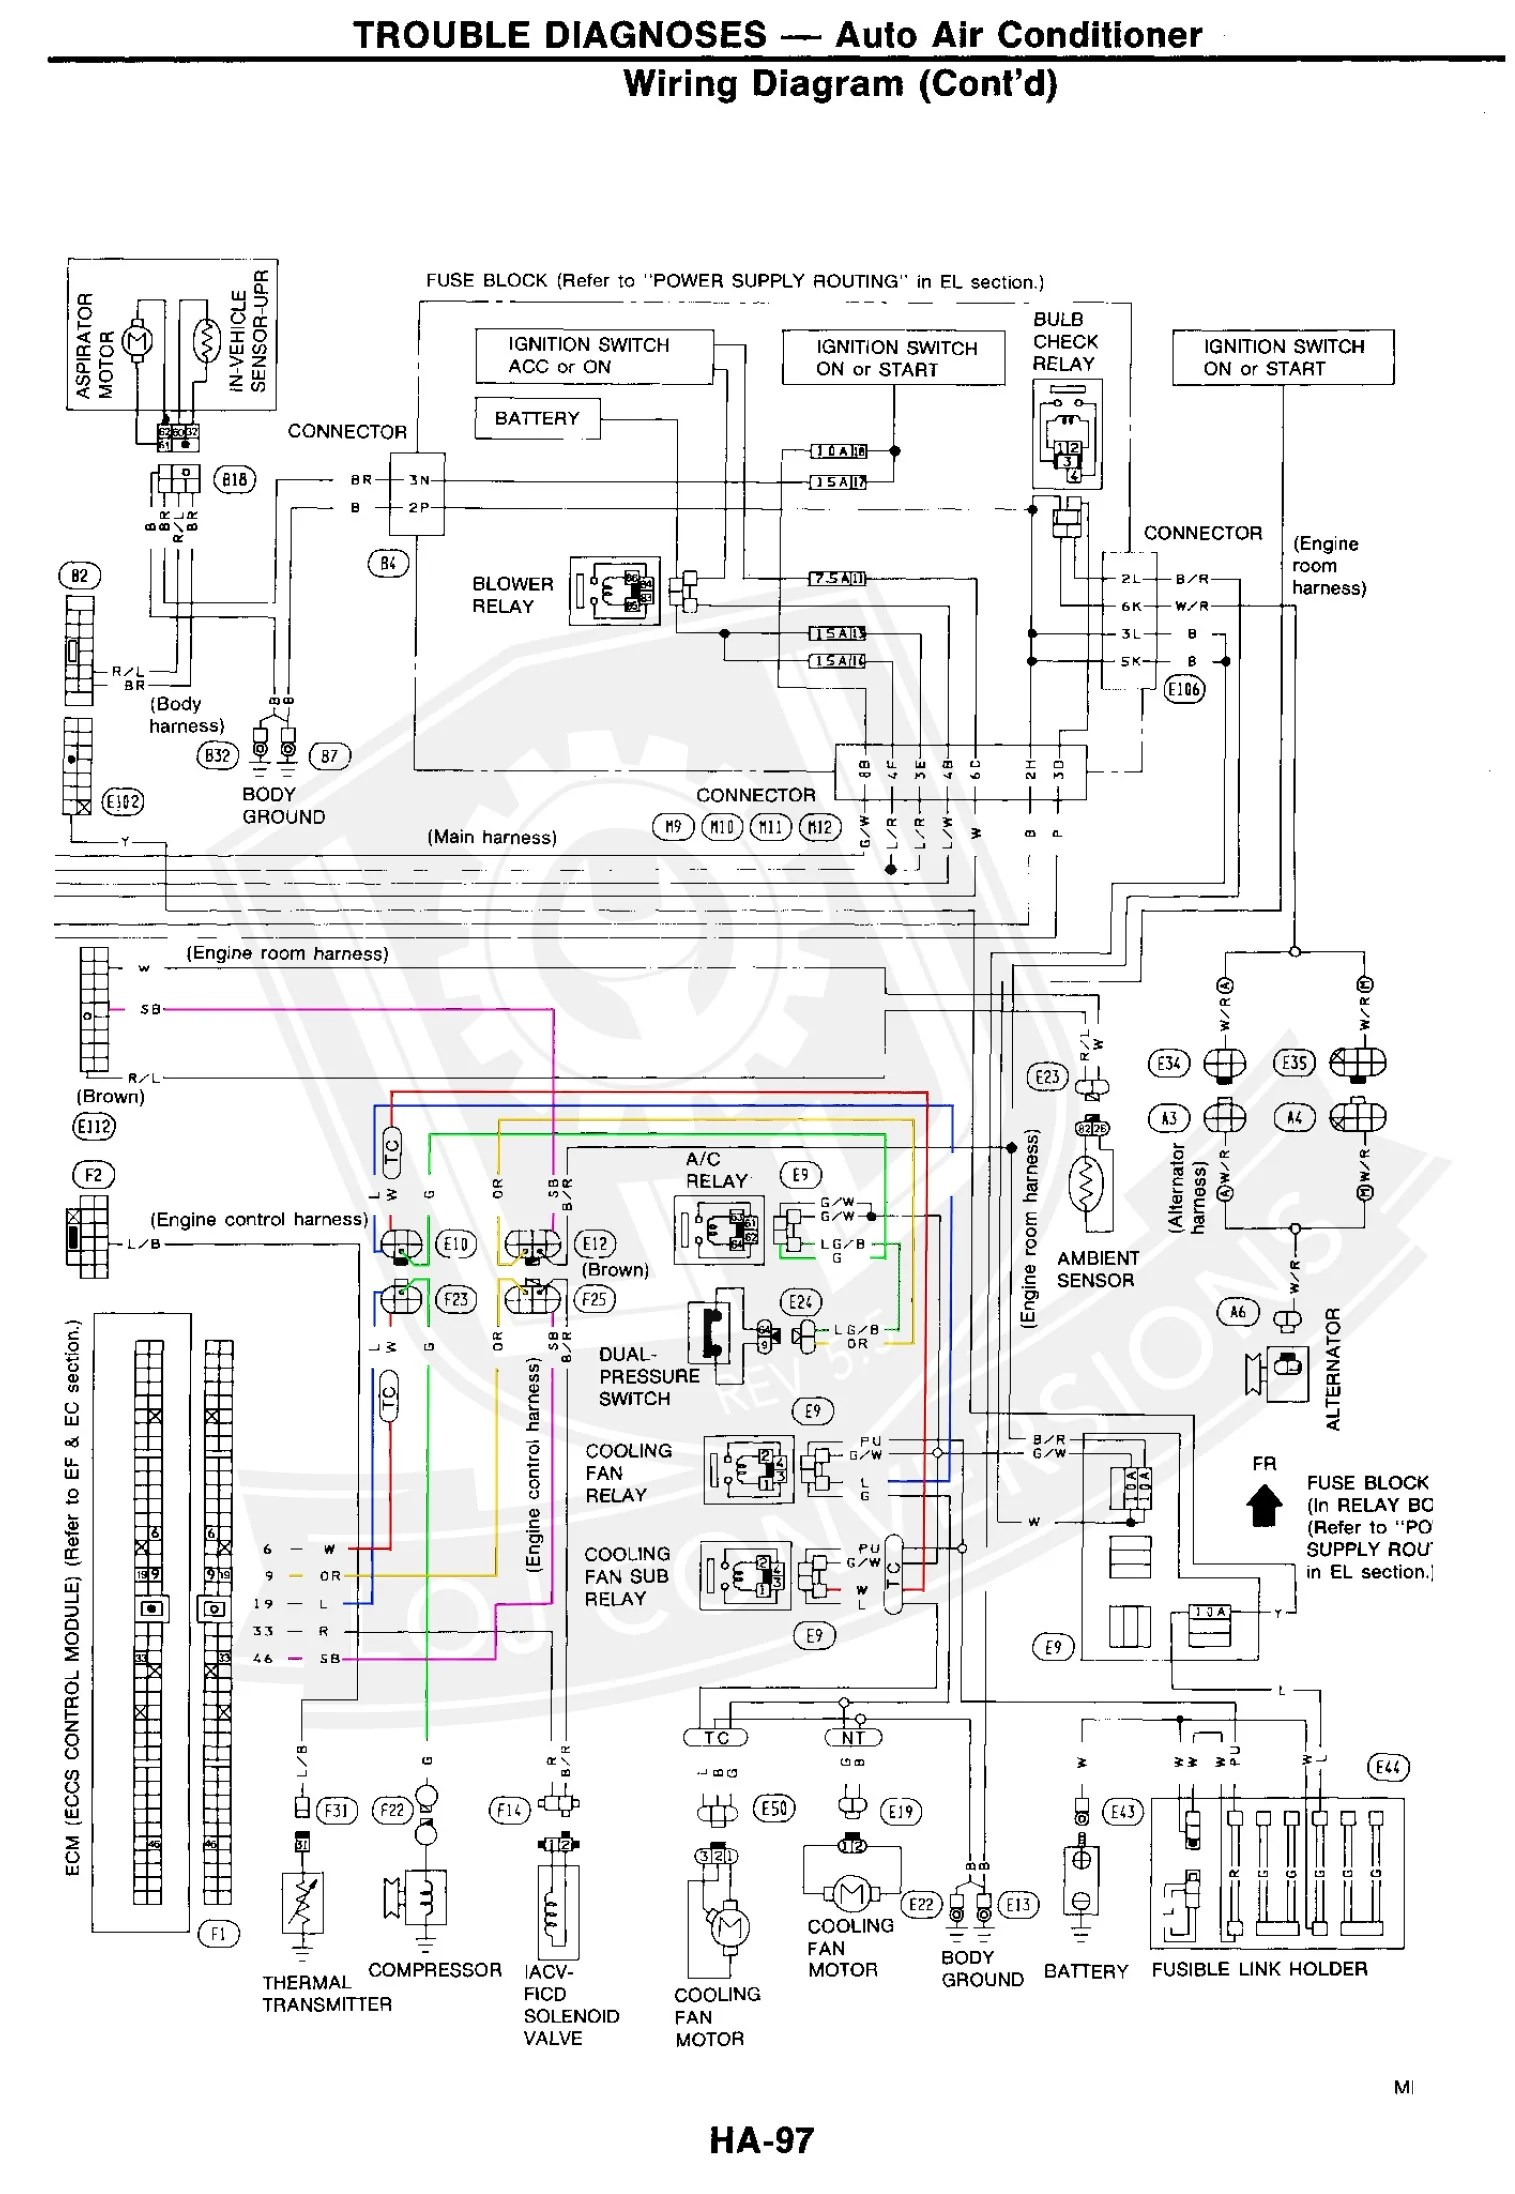 small resolution of 1977 280z fuse box wiring diagram centre280z engine diagrams wiring diagram1977 280z fuse box wiring diagram1977